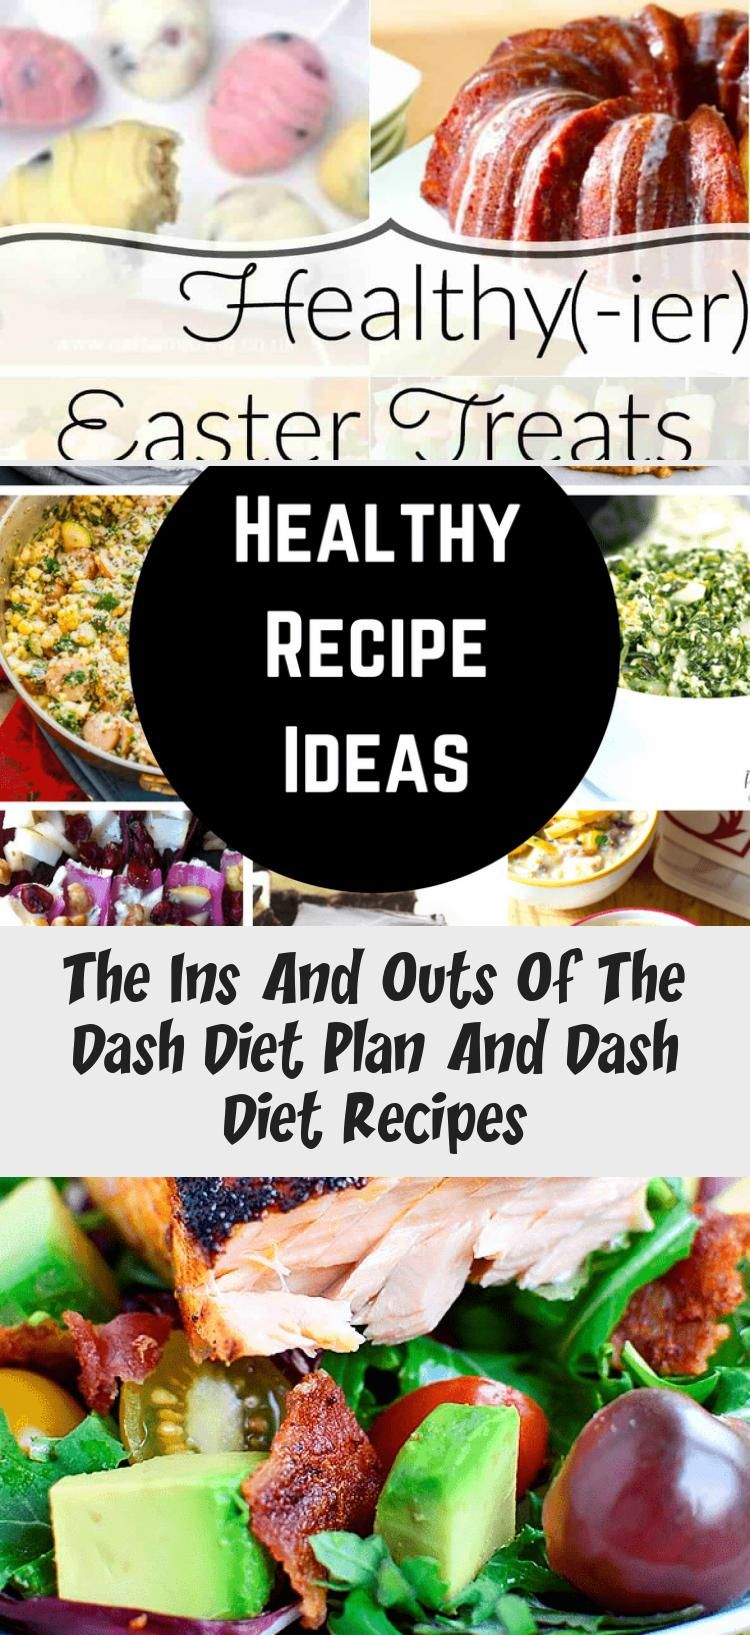 Tips, Tricks and Yummy Recipes for The DASH Diet